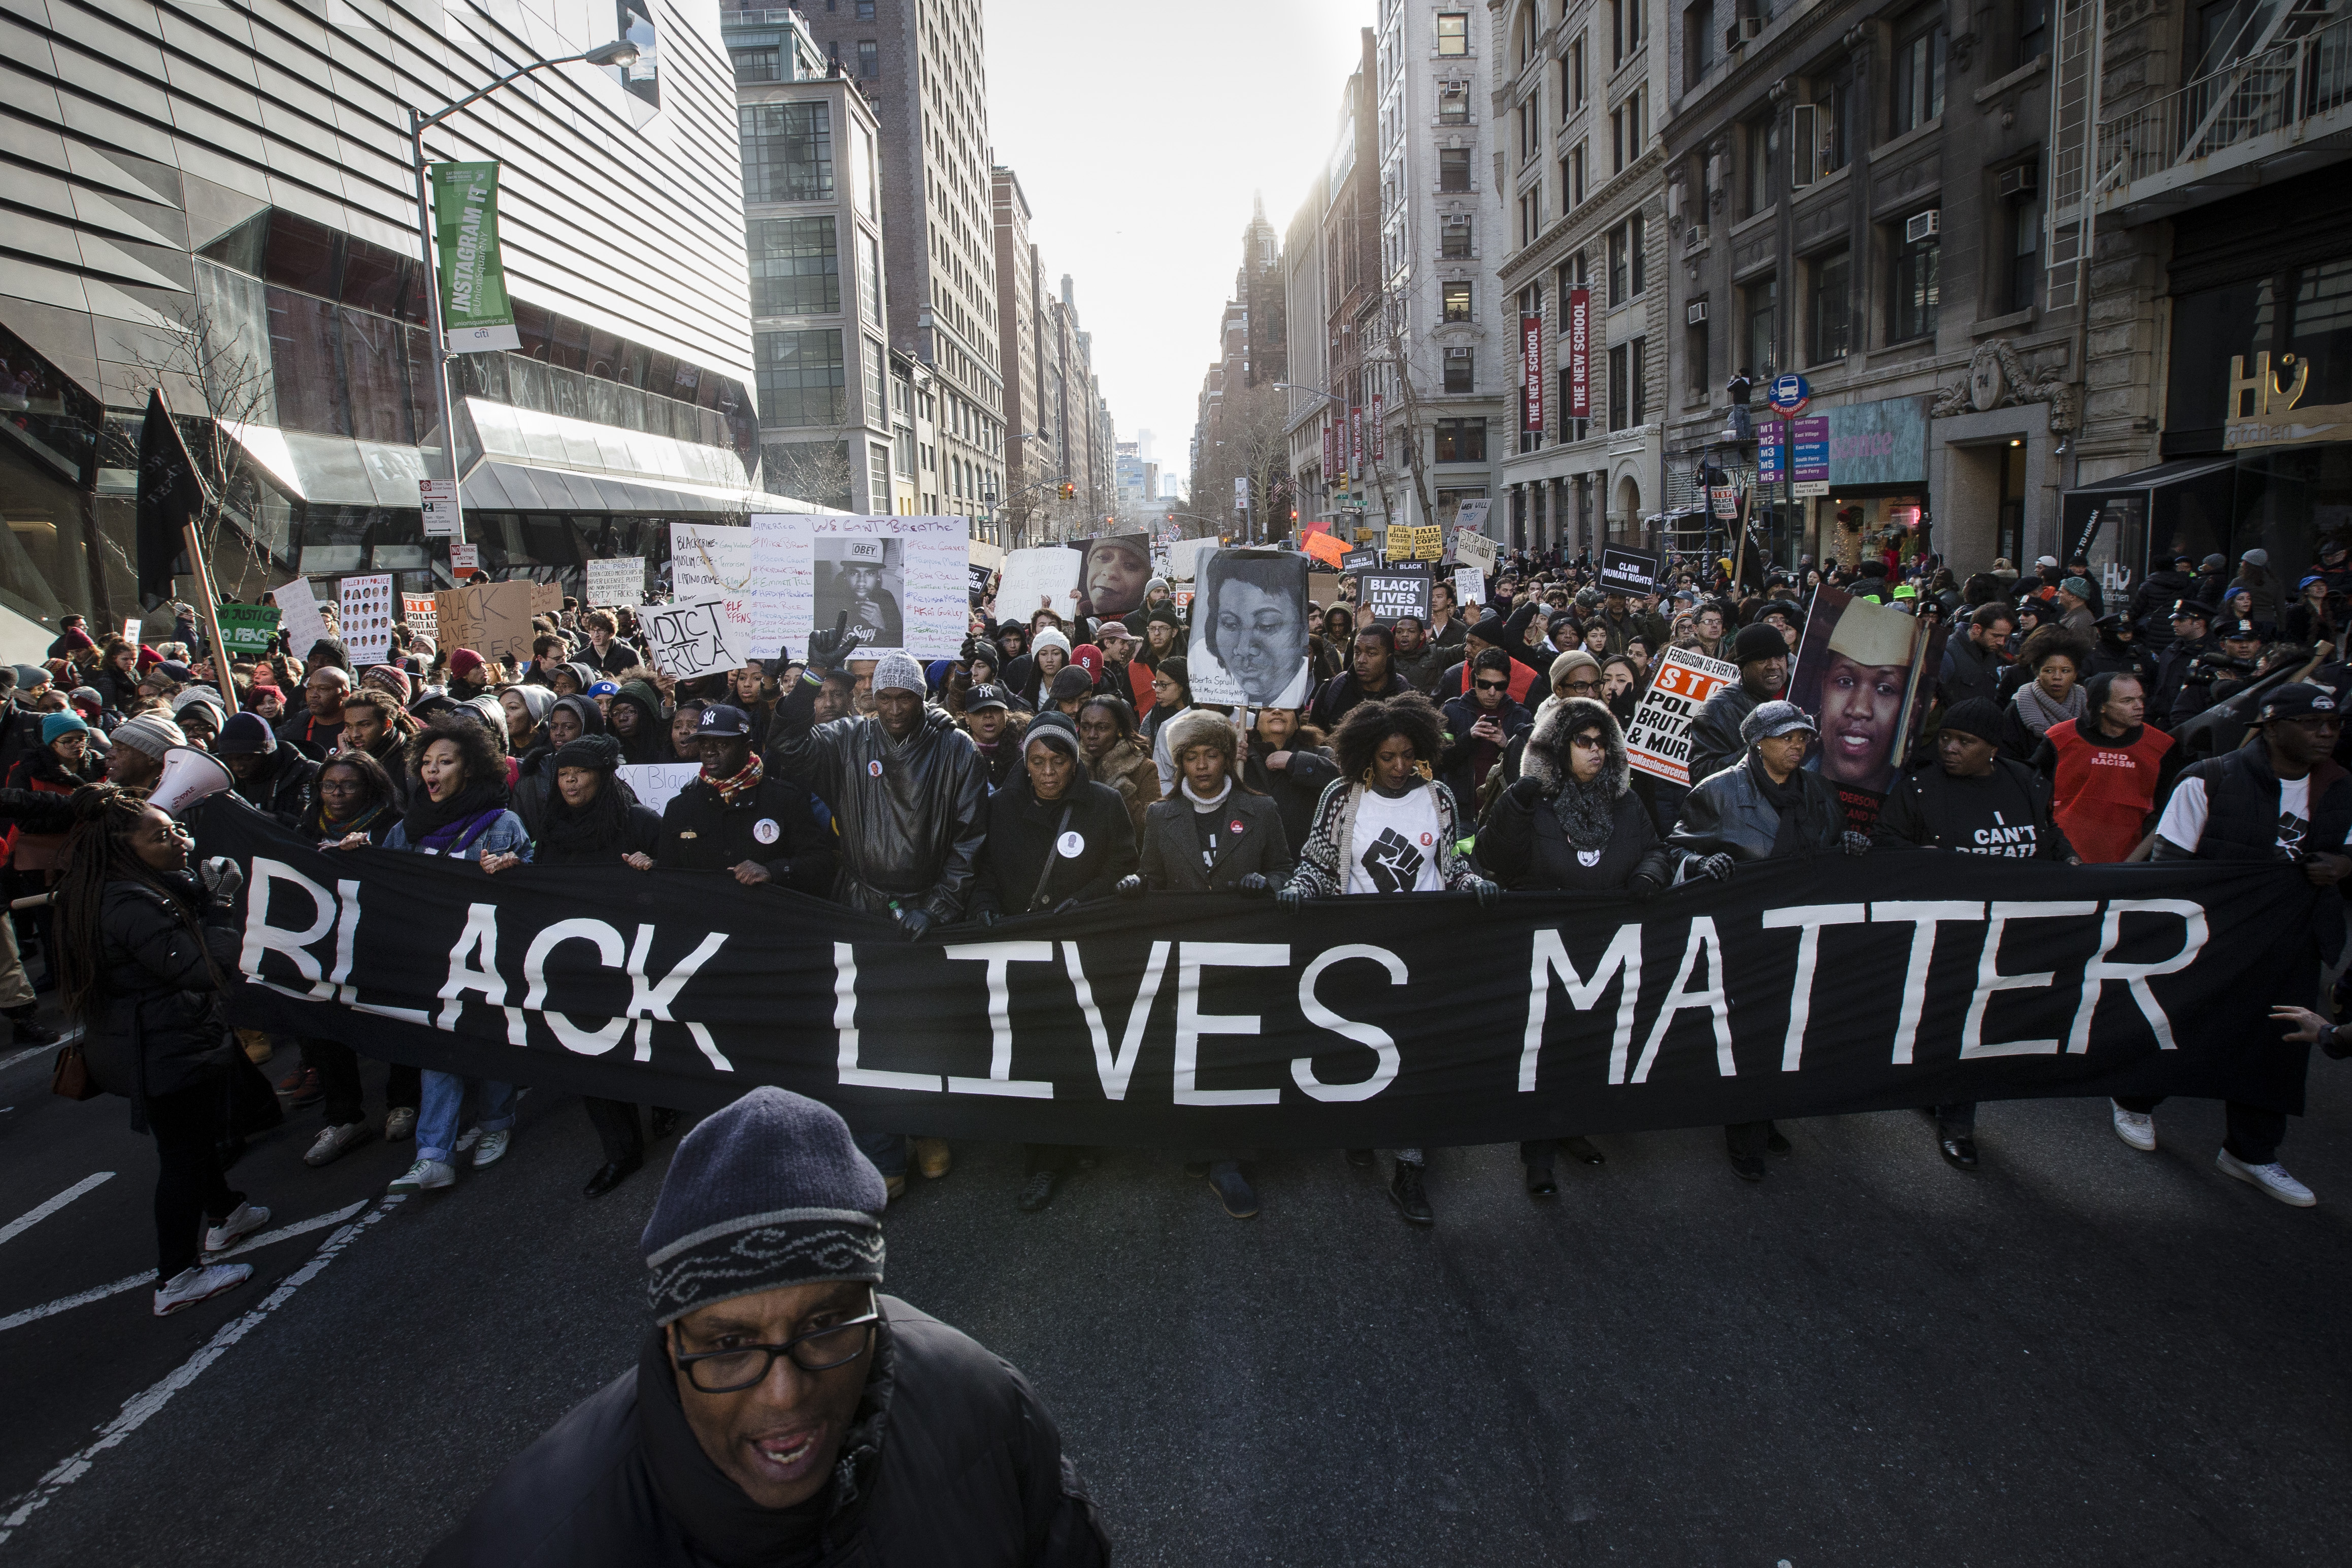 Demonstrators march in New York, Saturday, Dec. 13, 2014, during the Justice for All rally and march. In the past three weeks, grand juries have decided not to indict officers in the chokehold death of Eric Garner in New York and the fatal shooting of Michael Brown in Ferguson, Mo. The decisions have unleashed demonstrations and questions about police conduct and whether local prosecutors are the best choice for investigating police.